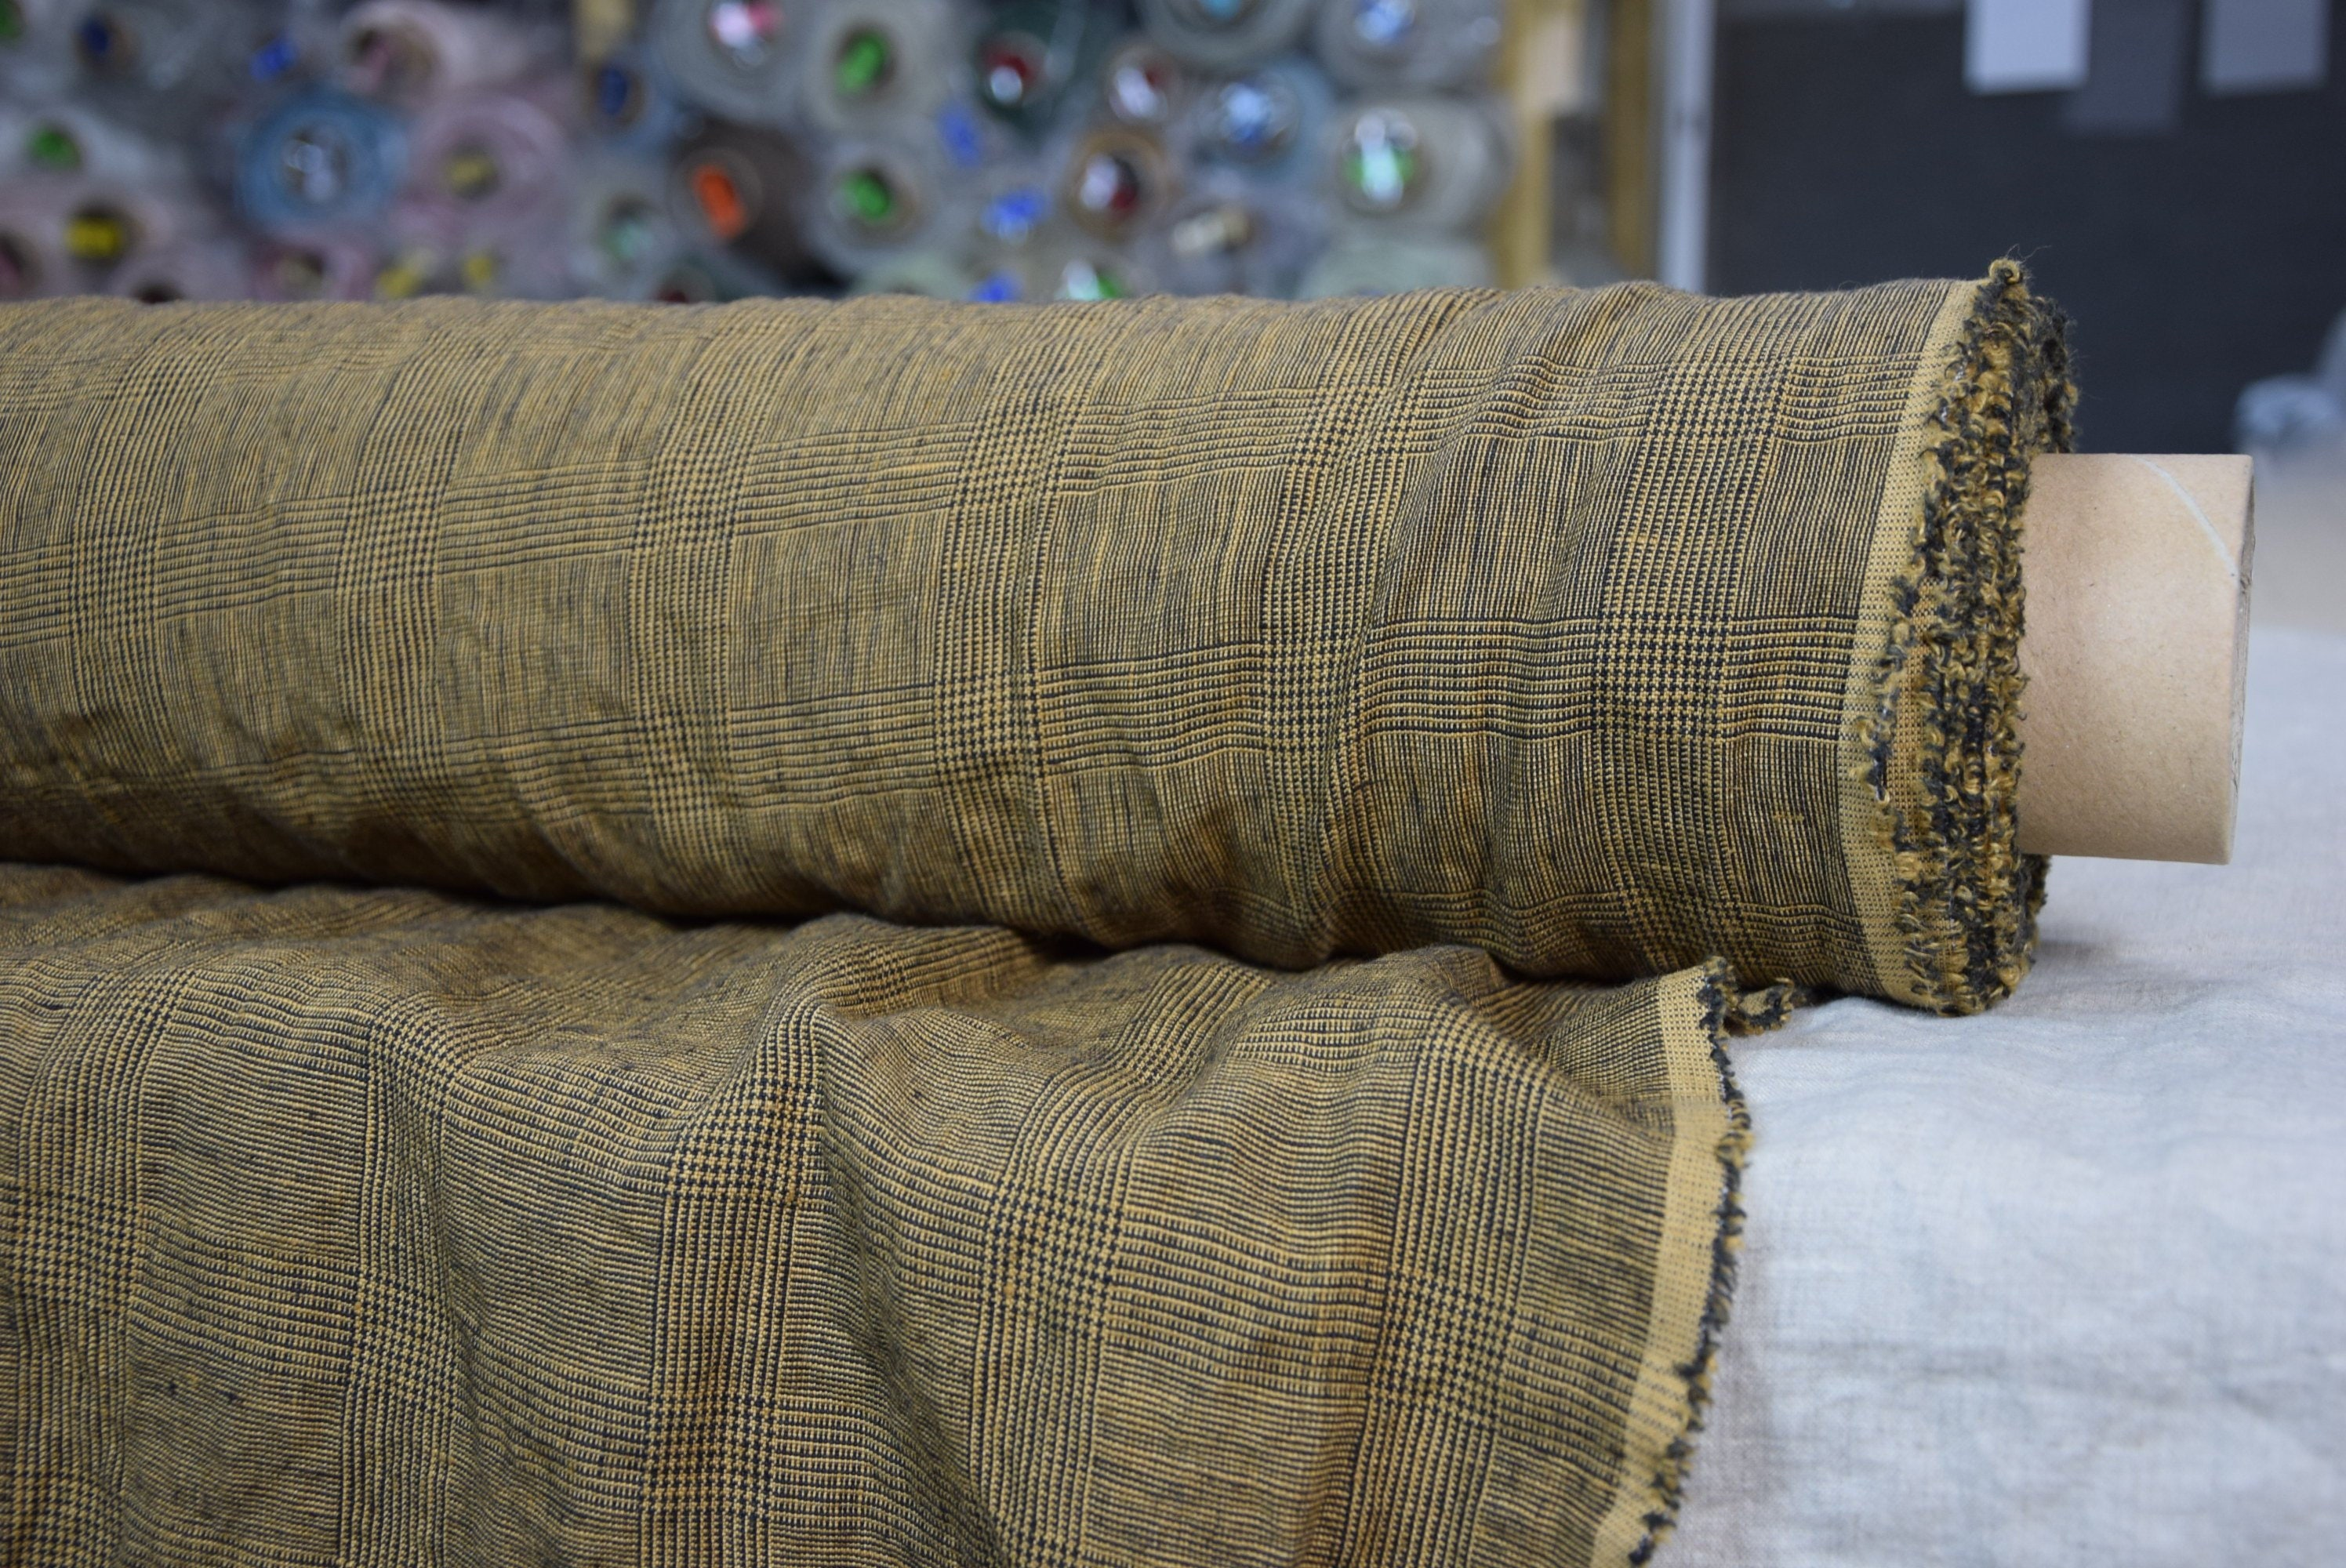 Softened-washed Beige-brown colors The last piece 1.90x1.45m Pure 100/% linen fabric Montana Windowpane Checks Beige 235gsm 75x57!